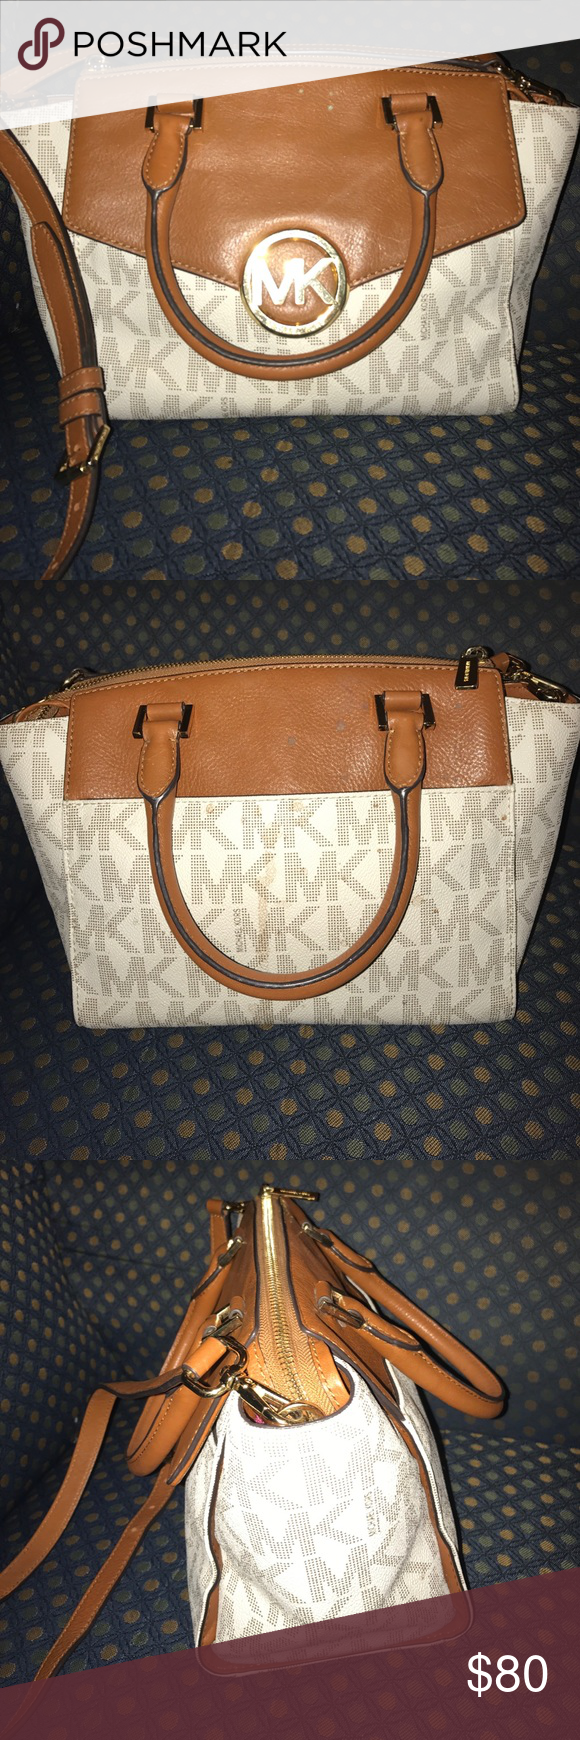 Michael Kors Satchel Good condition, only used on occasions. No wear or tear, clean with no stains KORS Michael Kors Bags Shoulder Bags